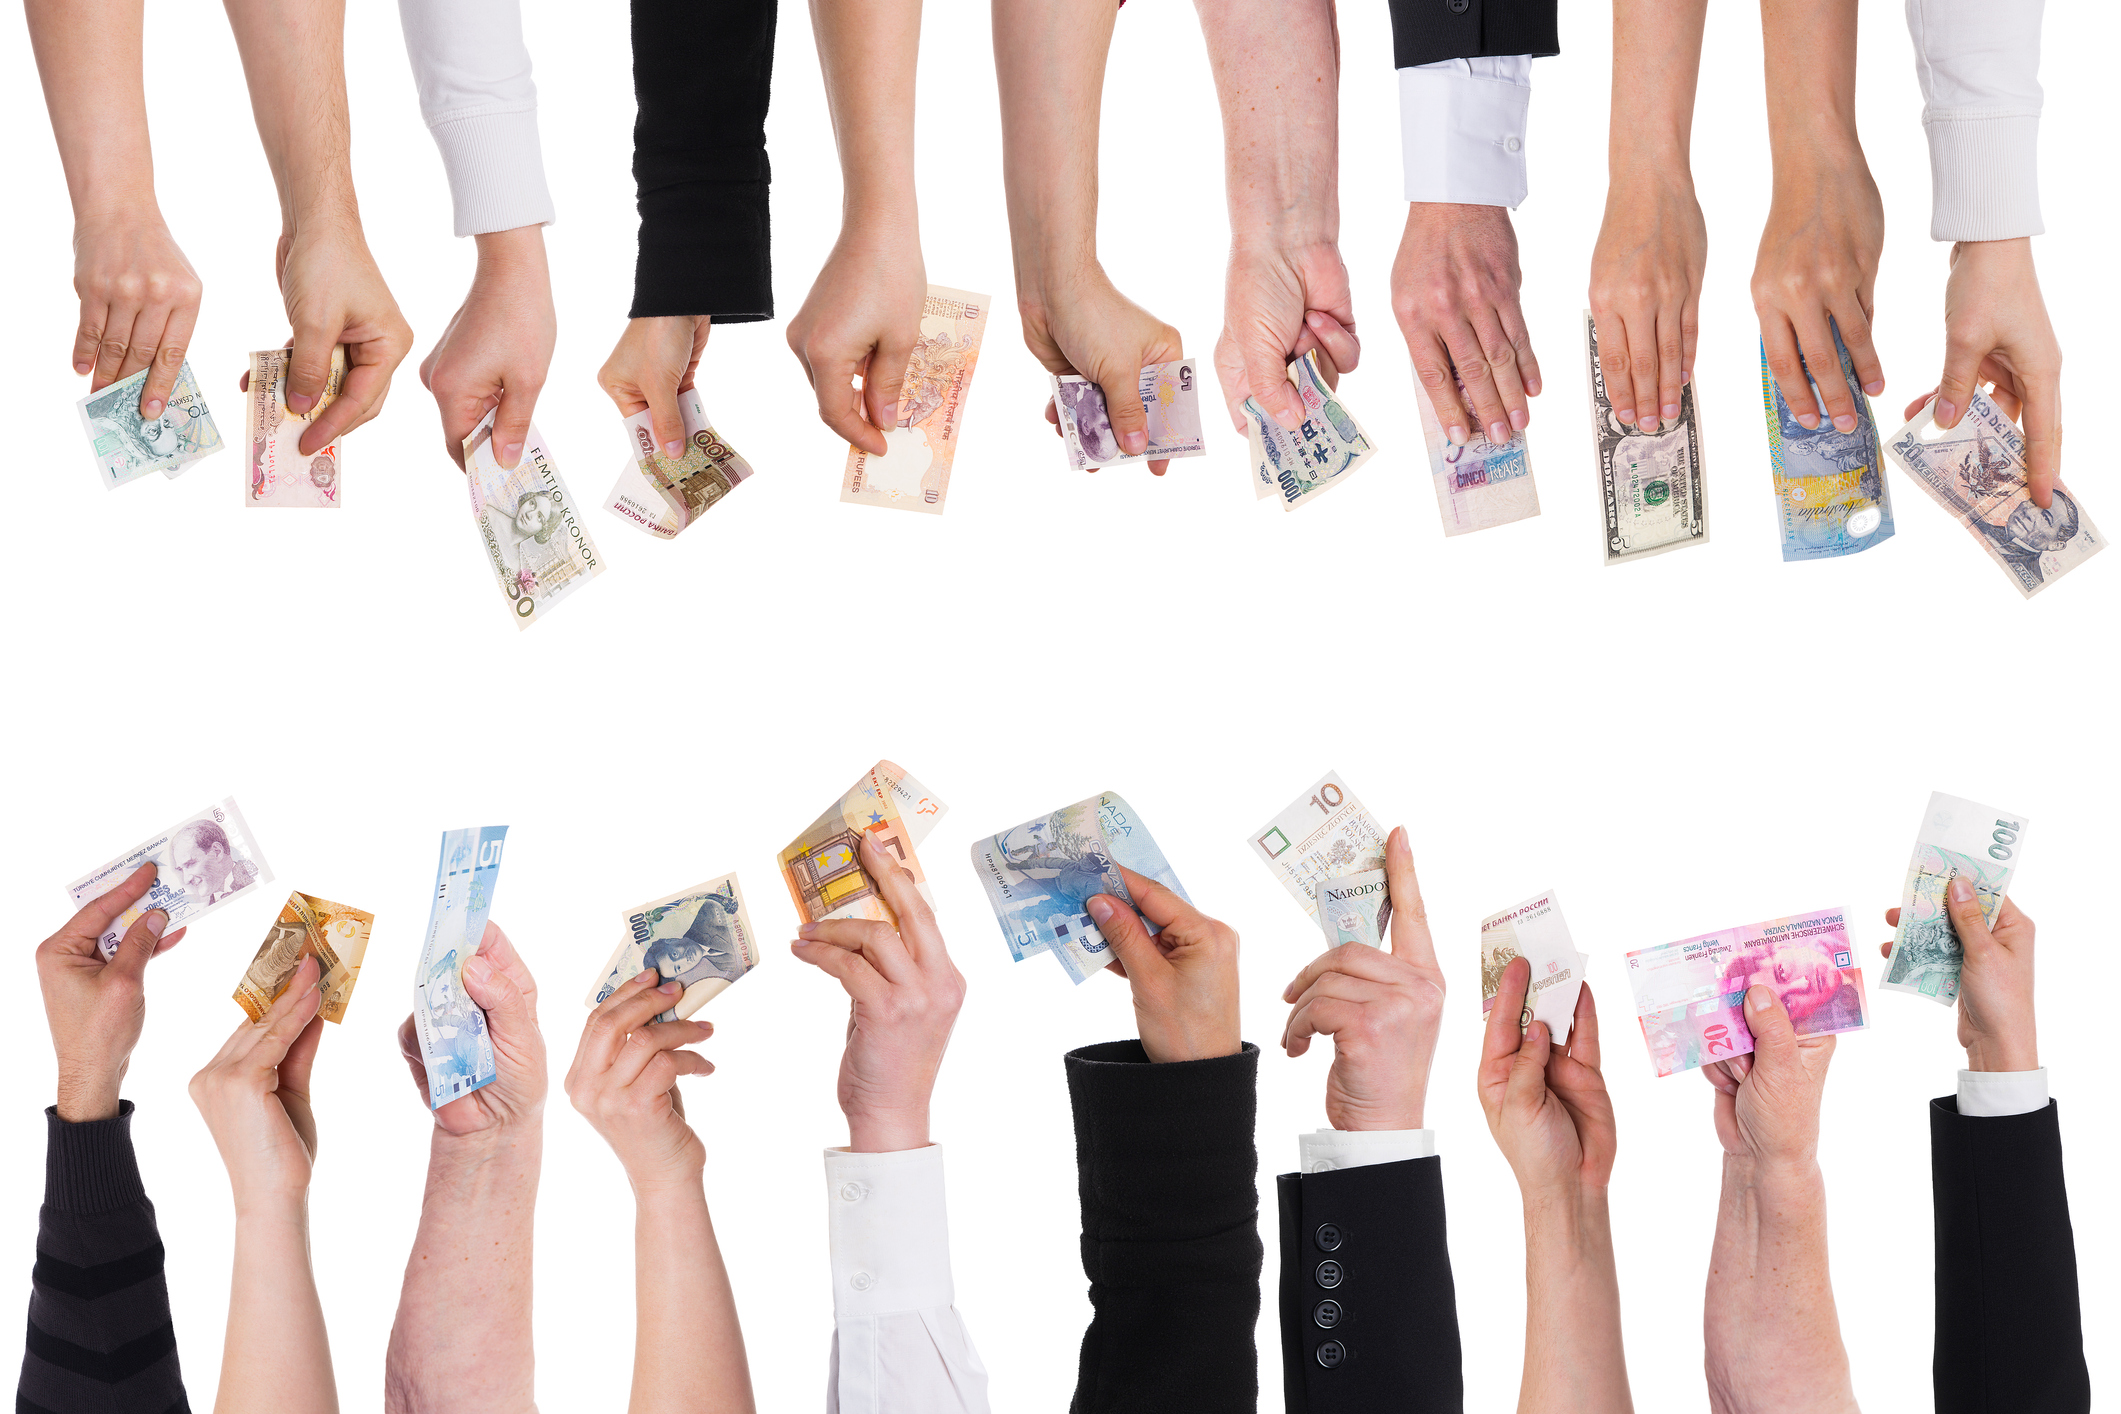 Crowdfunding: How to Successfully Launch Your Business